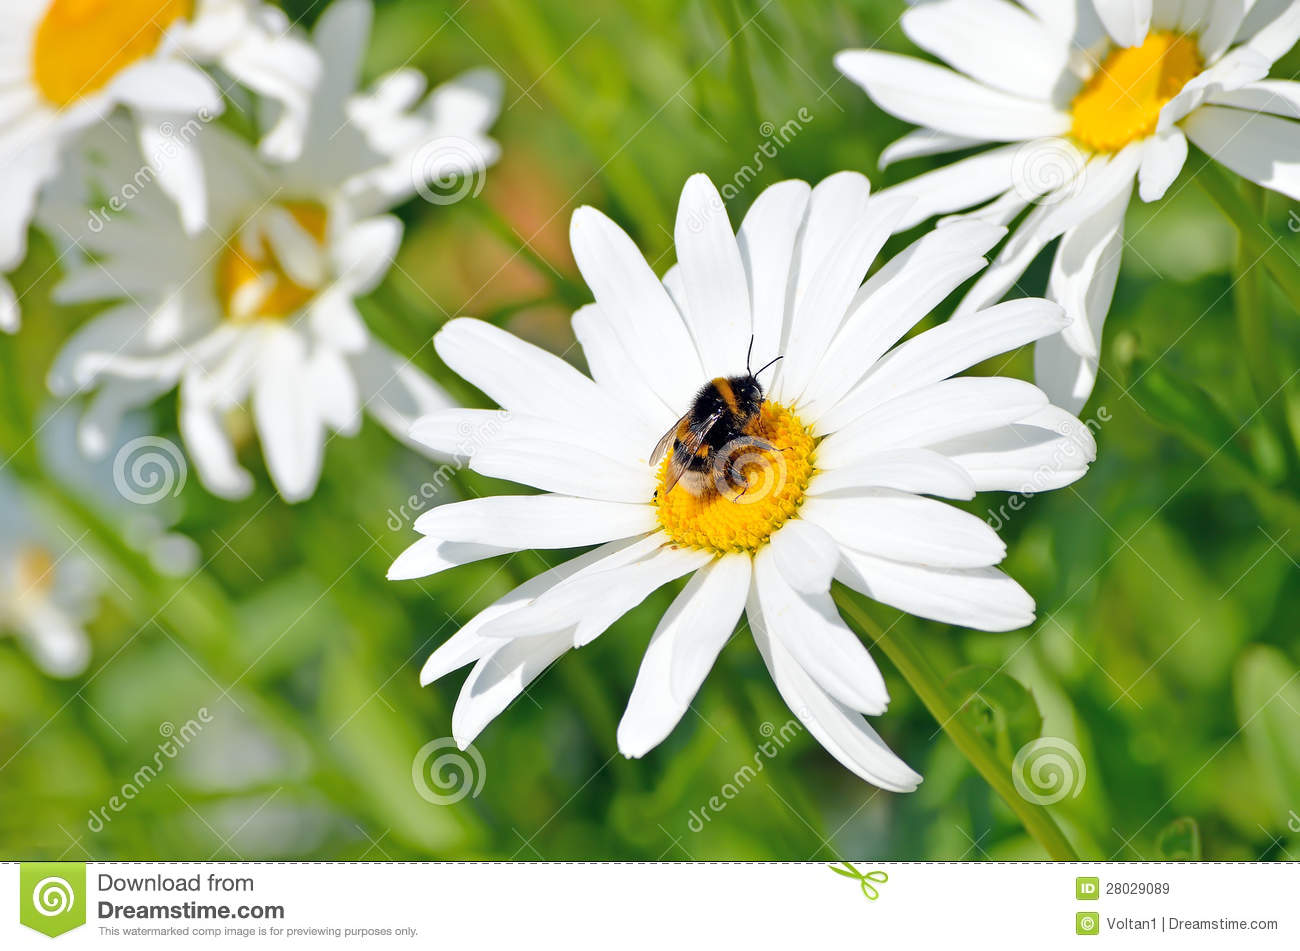 Bumblebee On A Daisy Flower Stock Image Image Of Field Beautiful